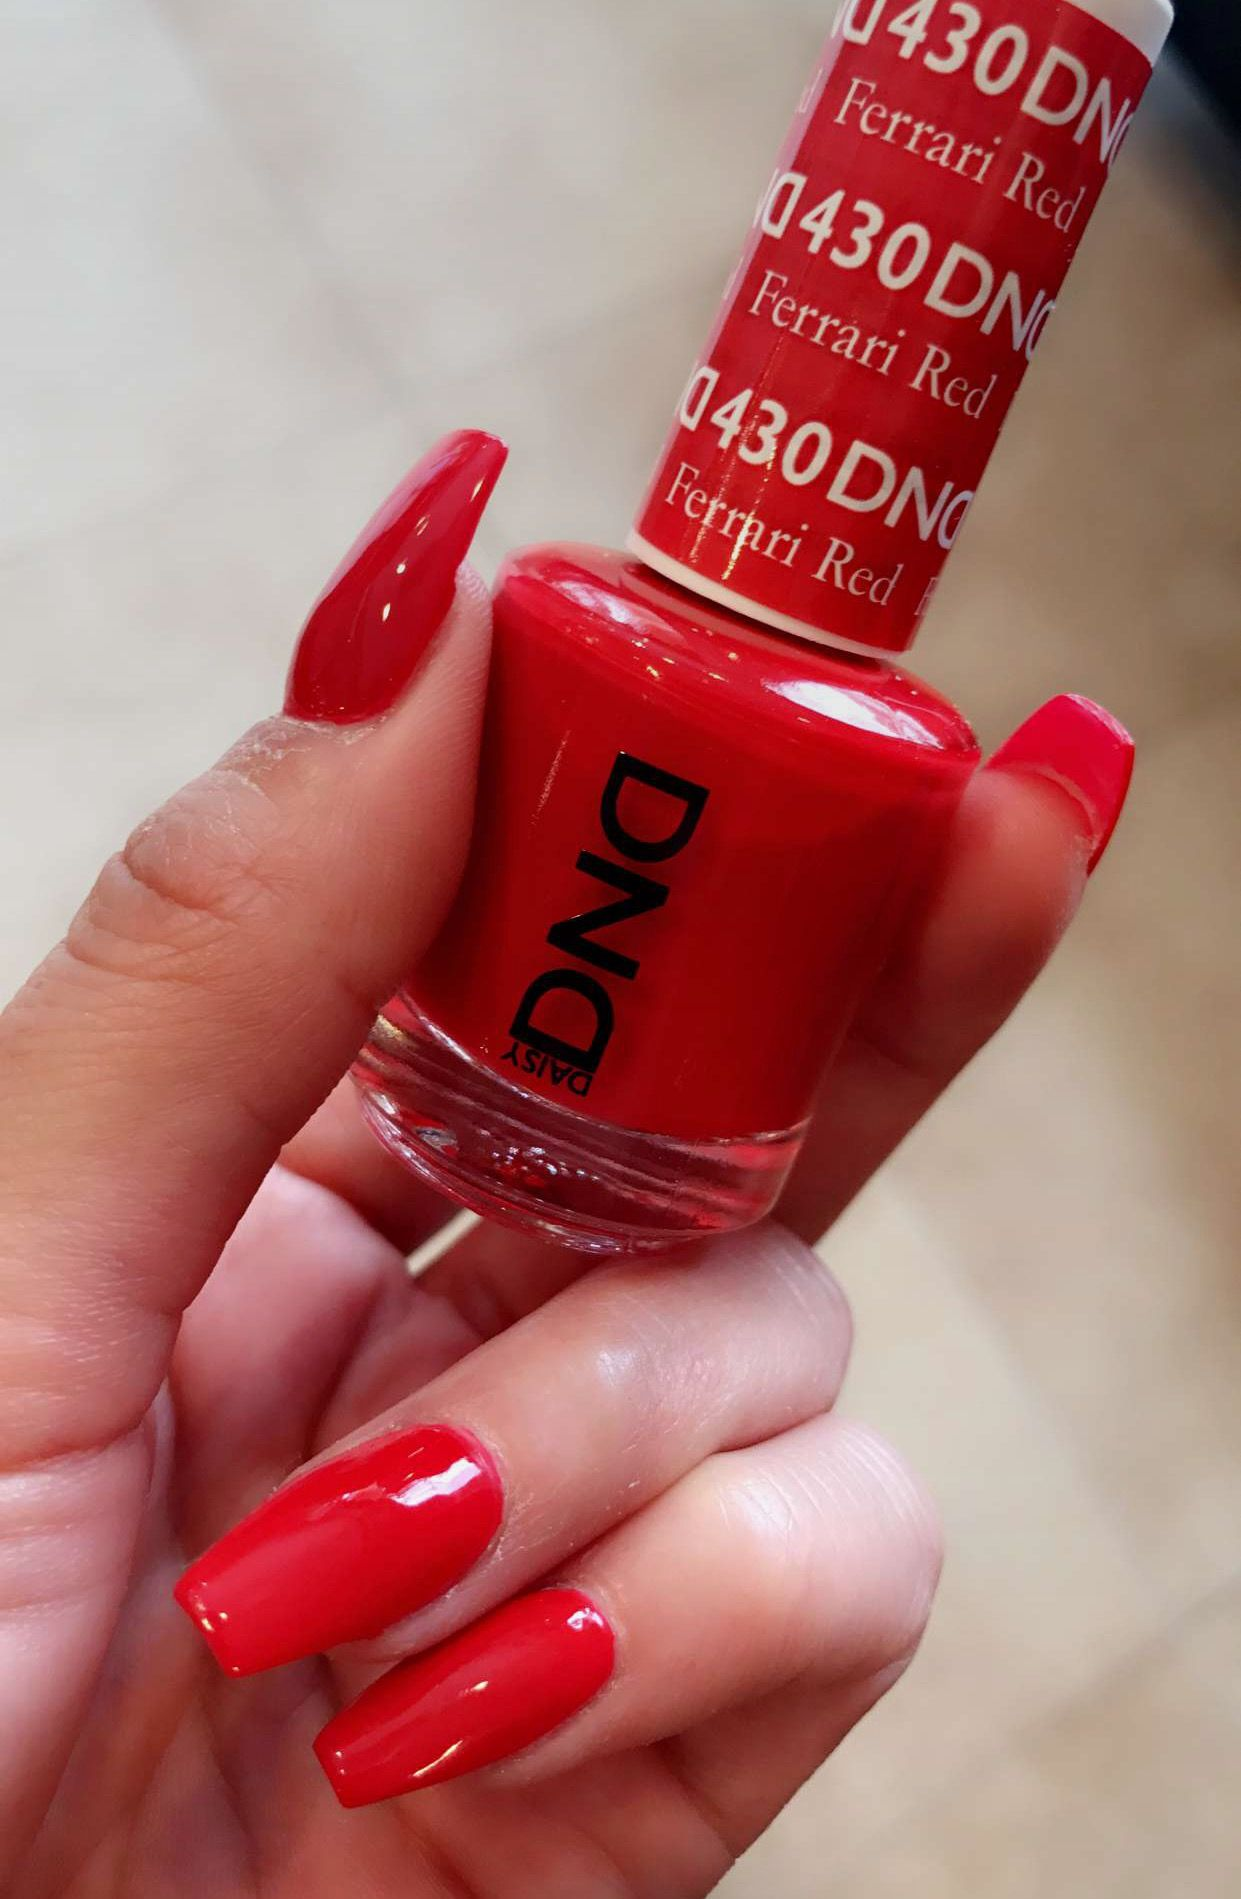 Dnd Daisy Ferrari Red Christmas Color Red Gel Nails Red Nails Dnd Nail Polish